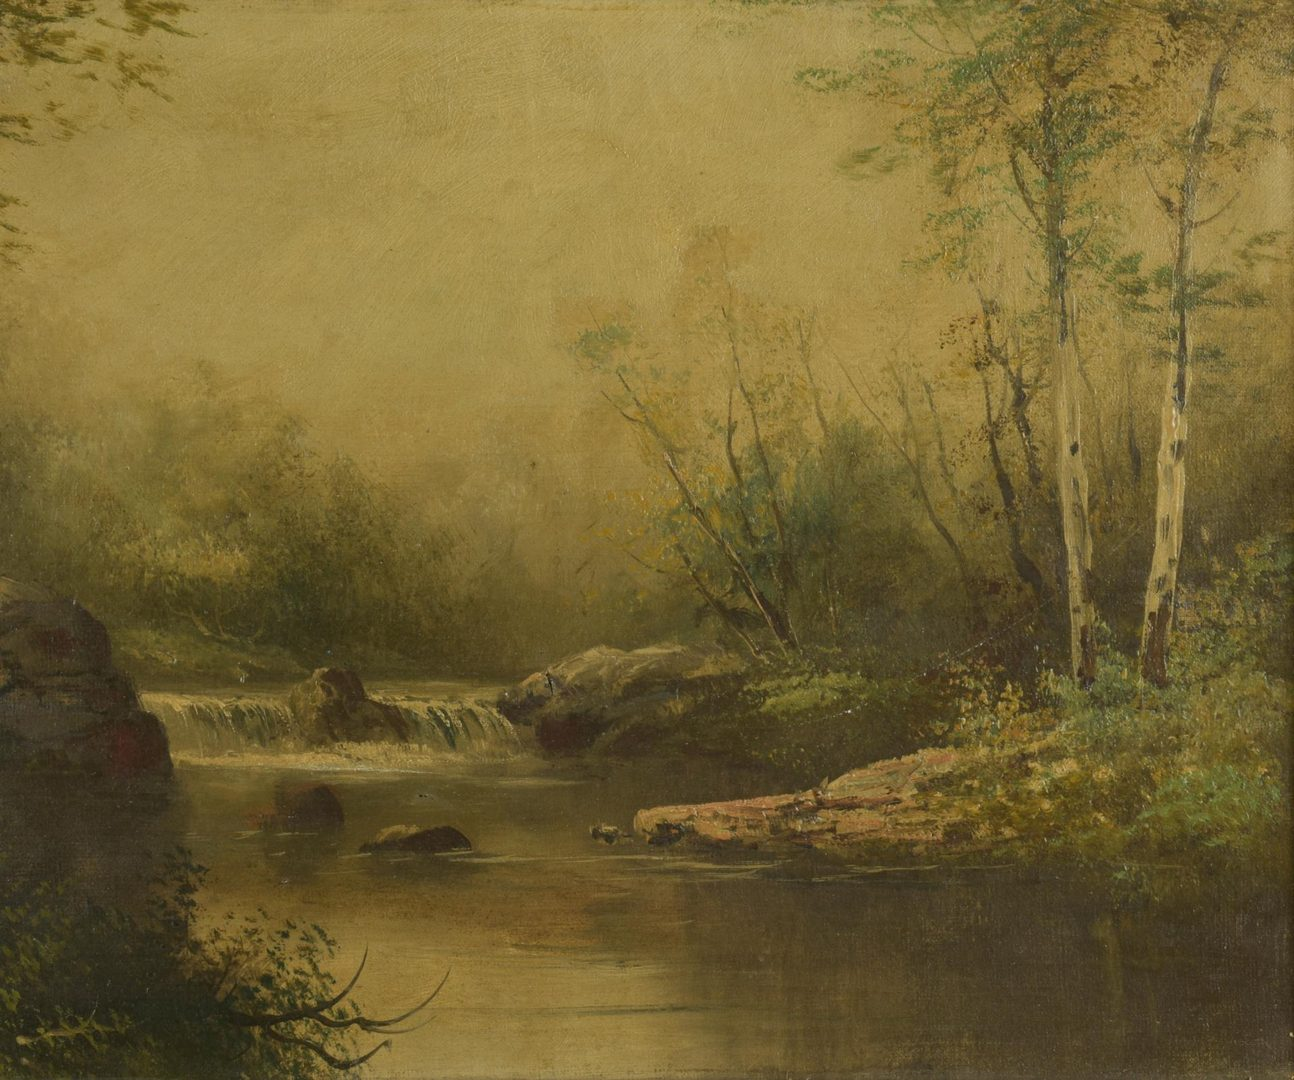 Lot 50: Landscape, O/C, possibly after Alfred R. Mitchell